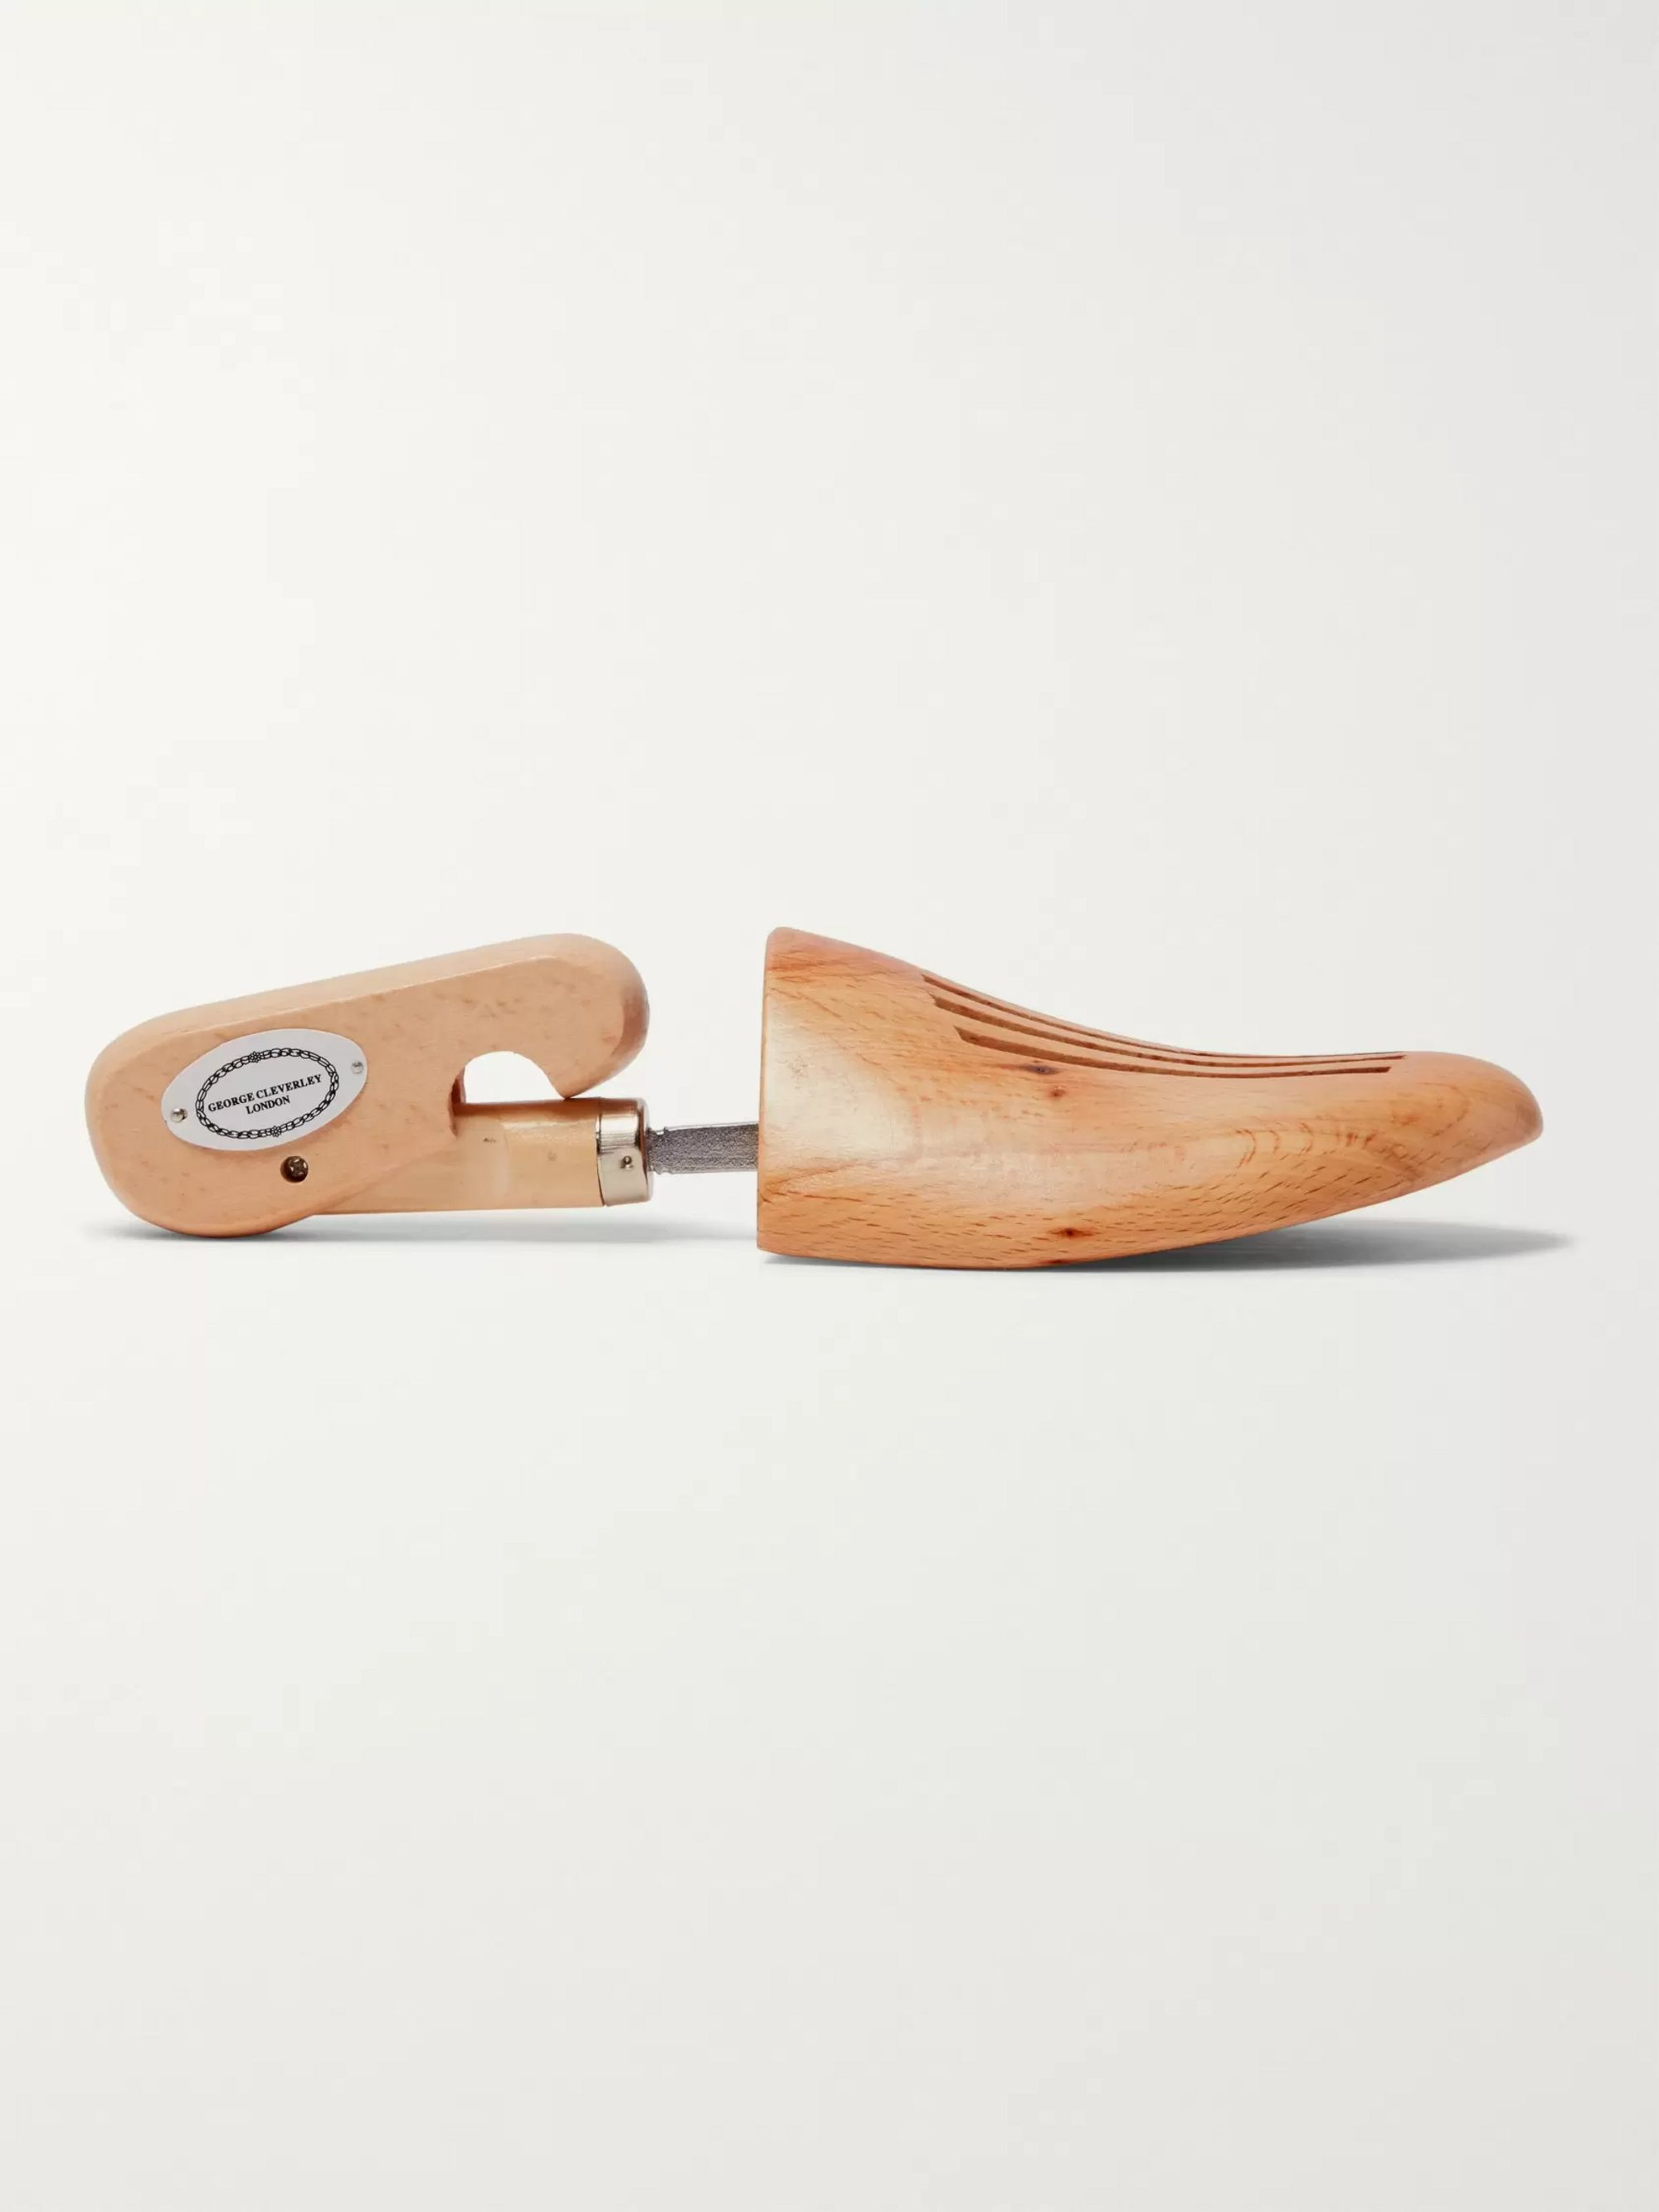 GEORGE CLEVERLEY Wooden Shoe Trees